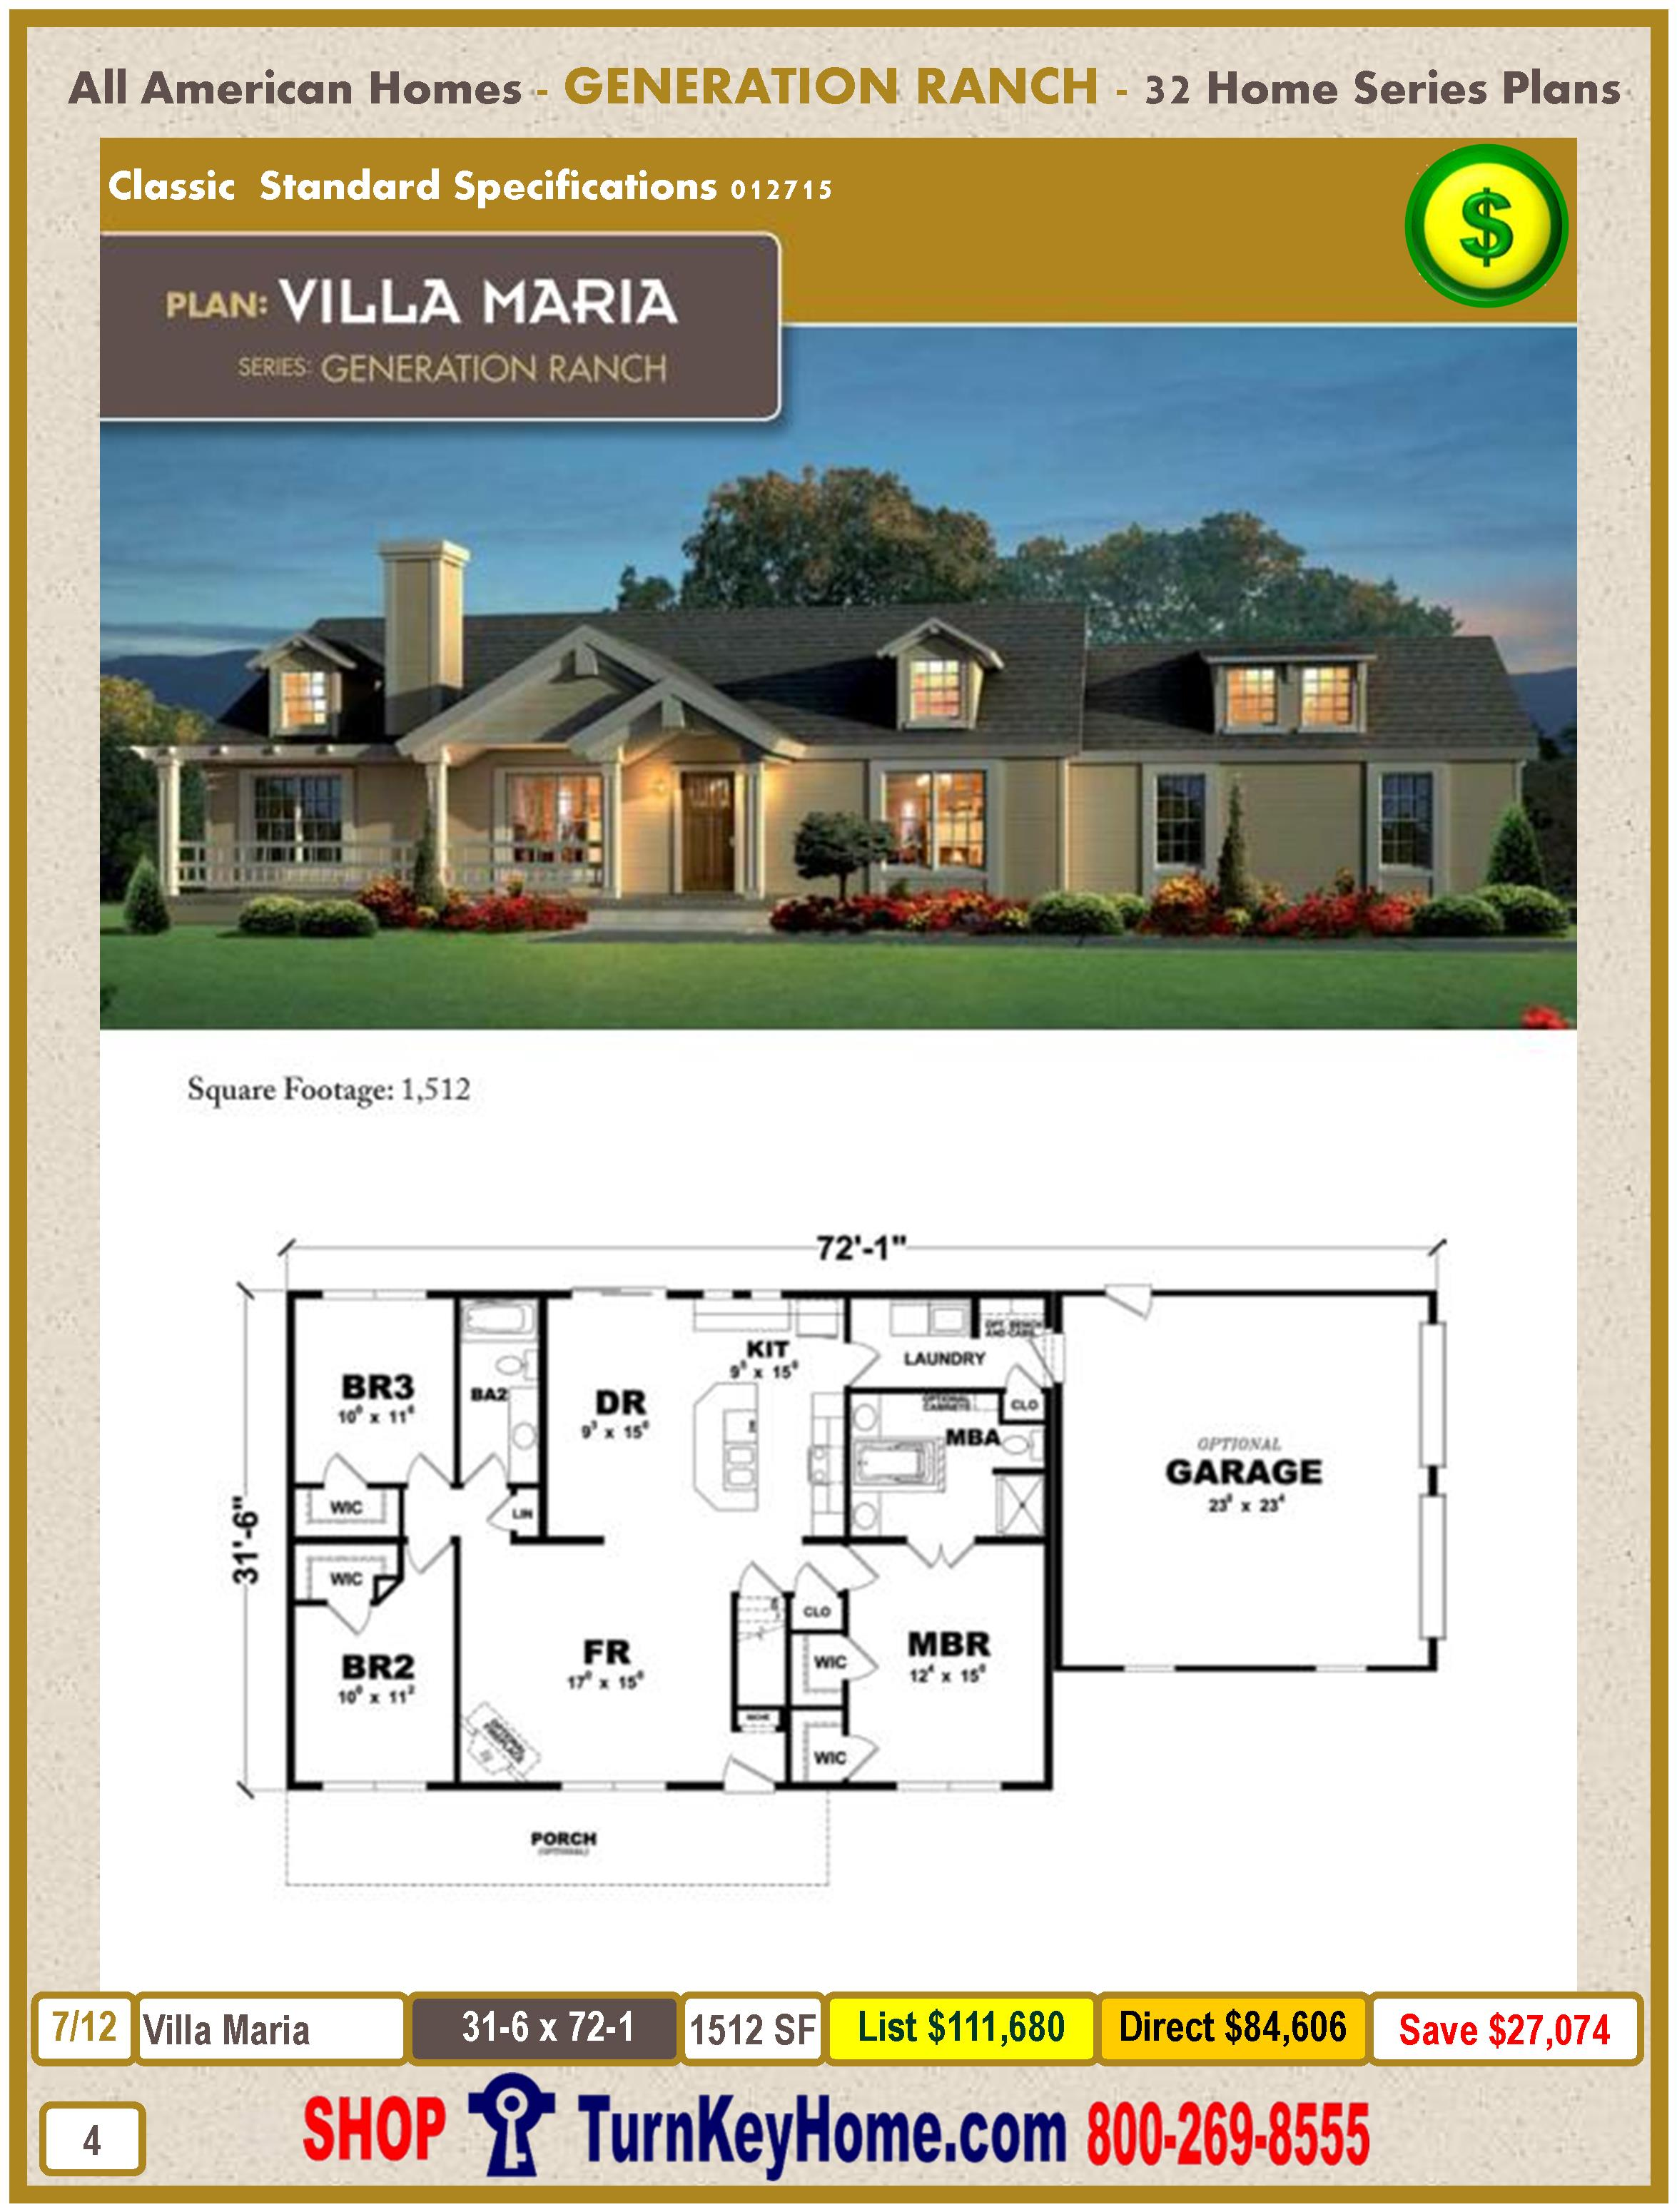 Modular Homes All American Homes GENERATION RANCH CATALOG Plans Prices. Modular Homes Direct Priced